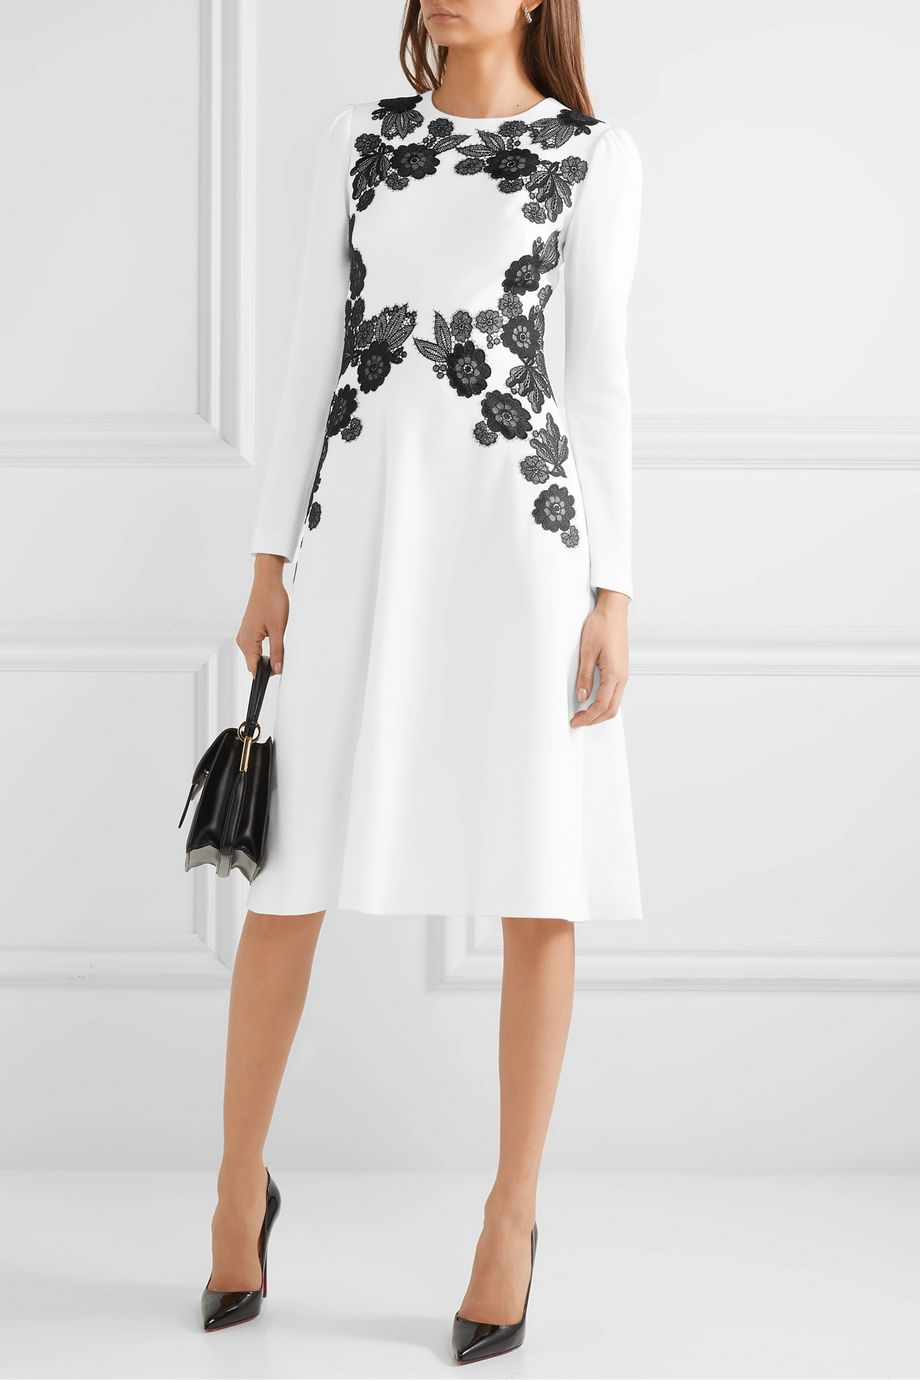 Lela Rose Lace-trimmed wool-blend crepe dress